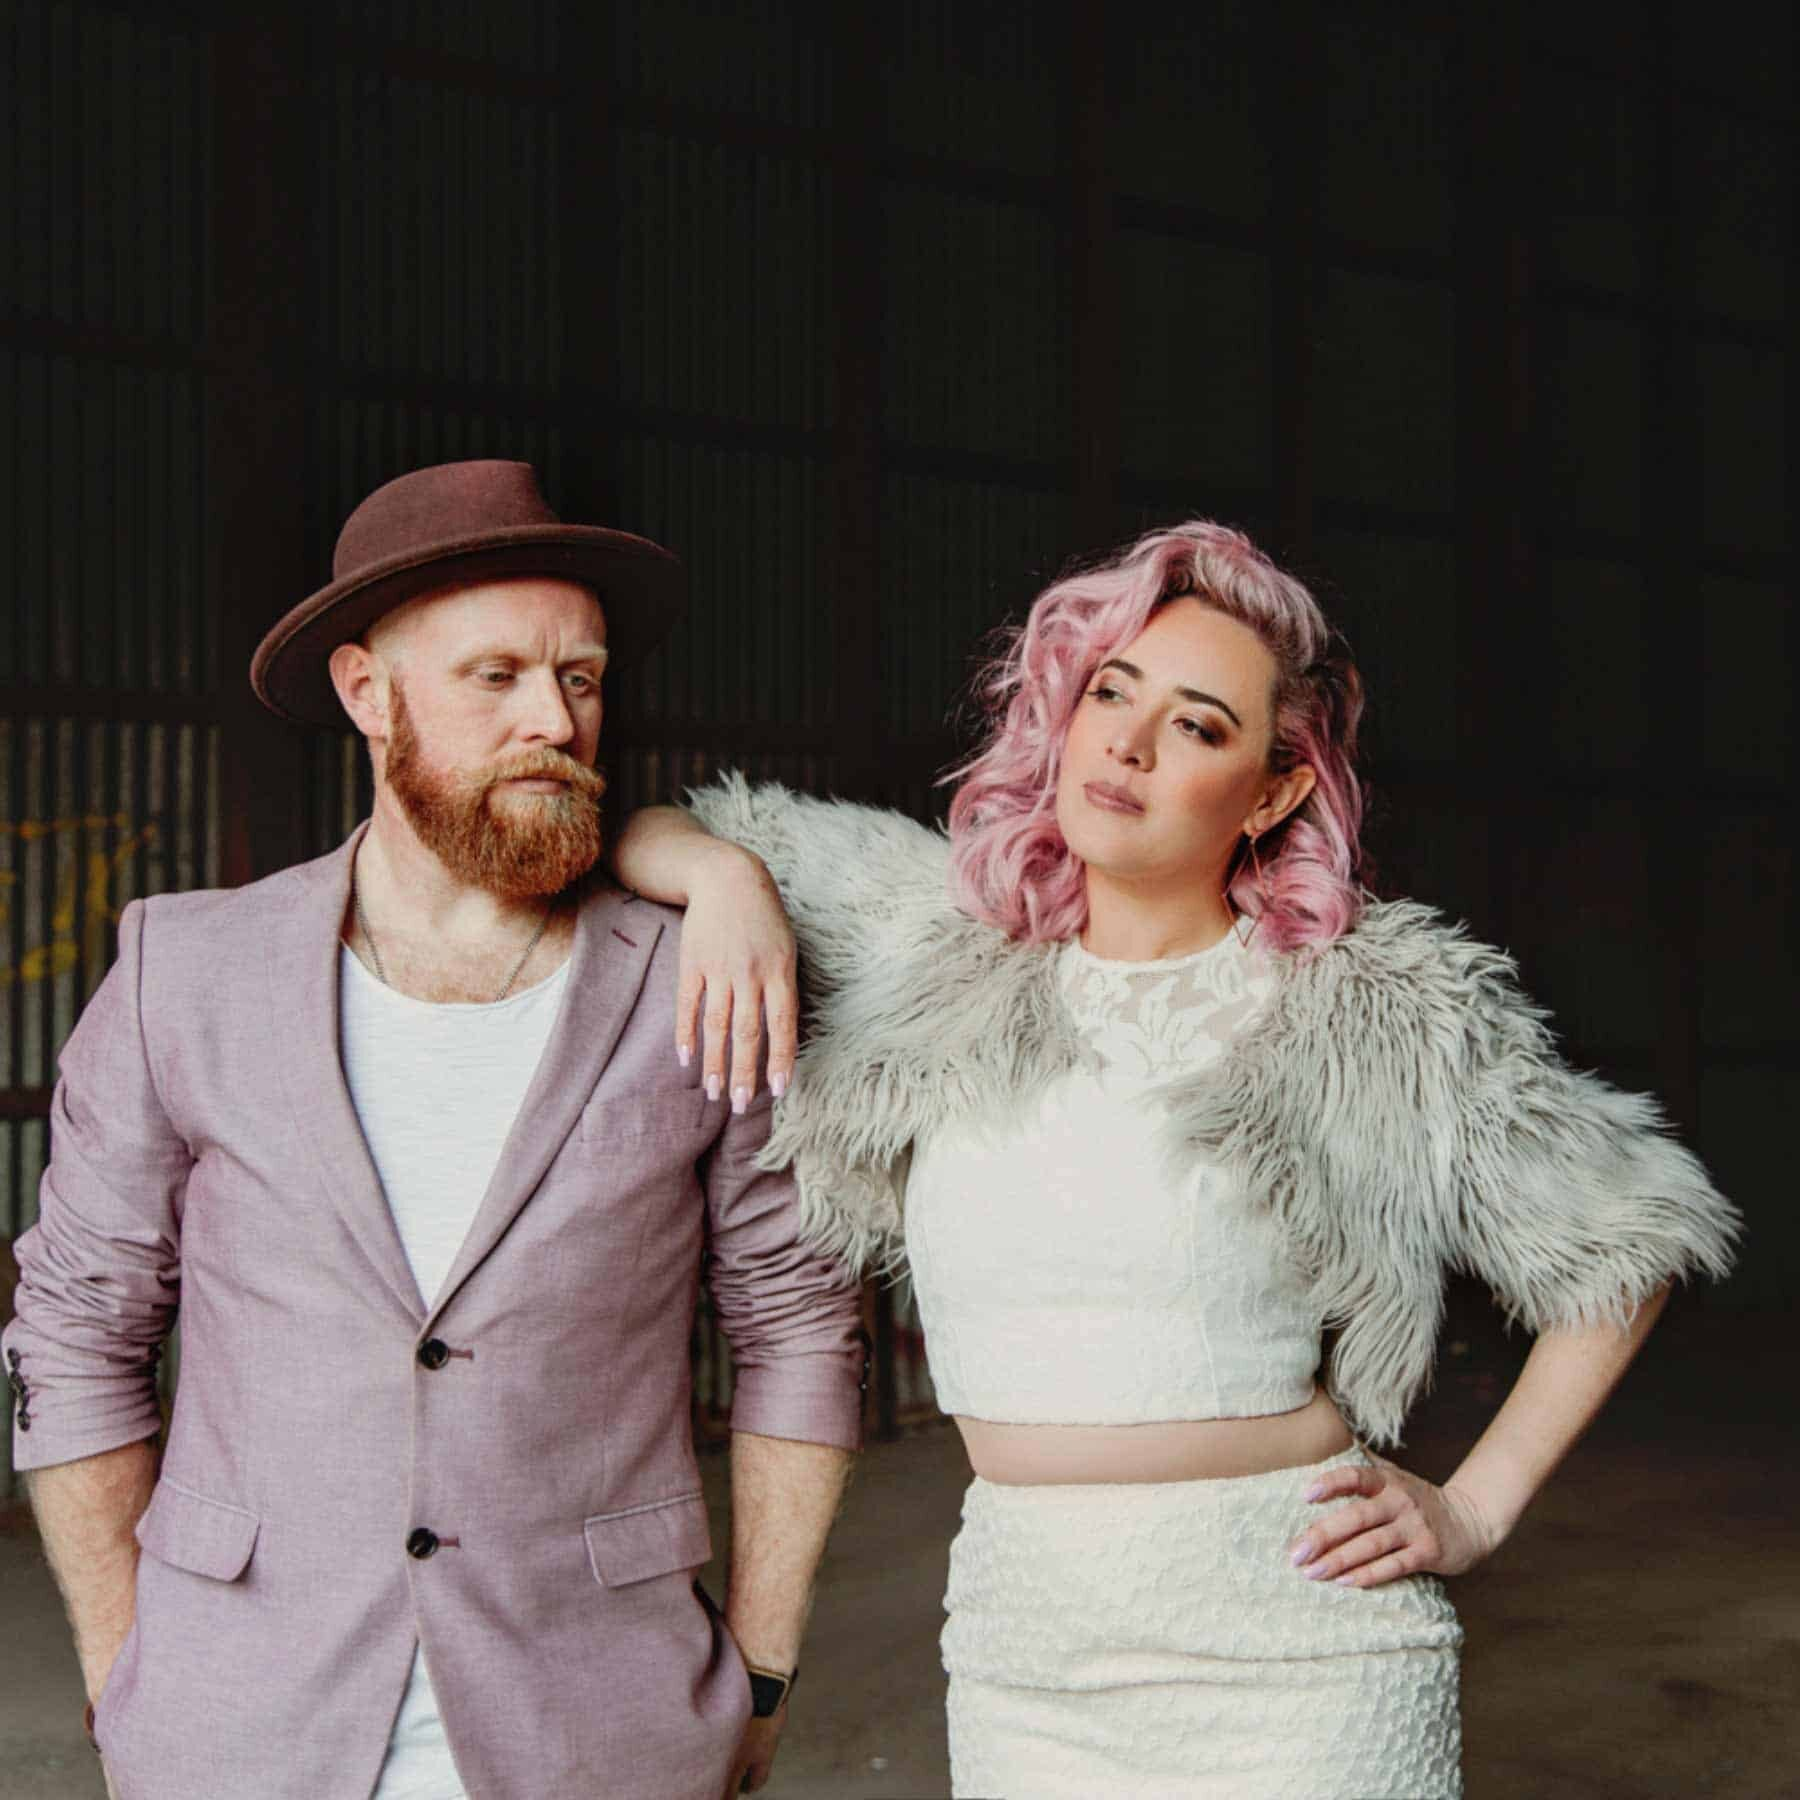 Event Entertainers - wedding bands and DJs in Australia